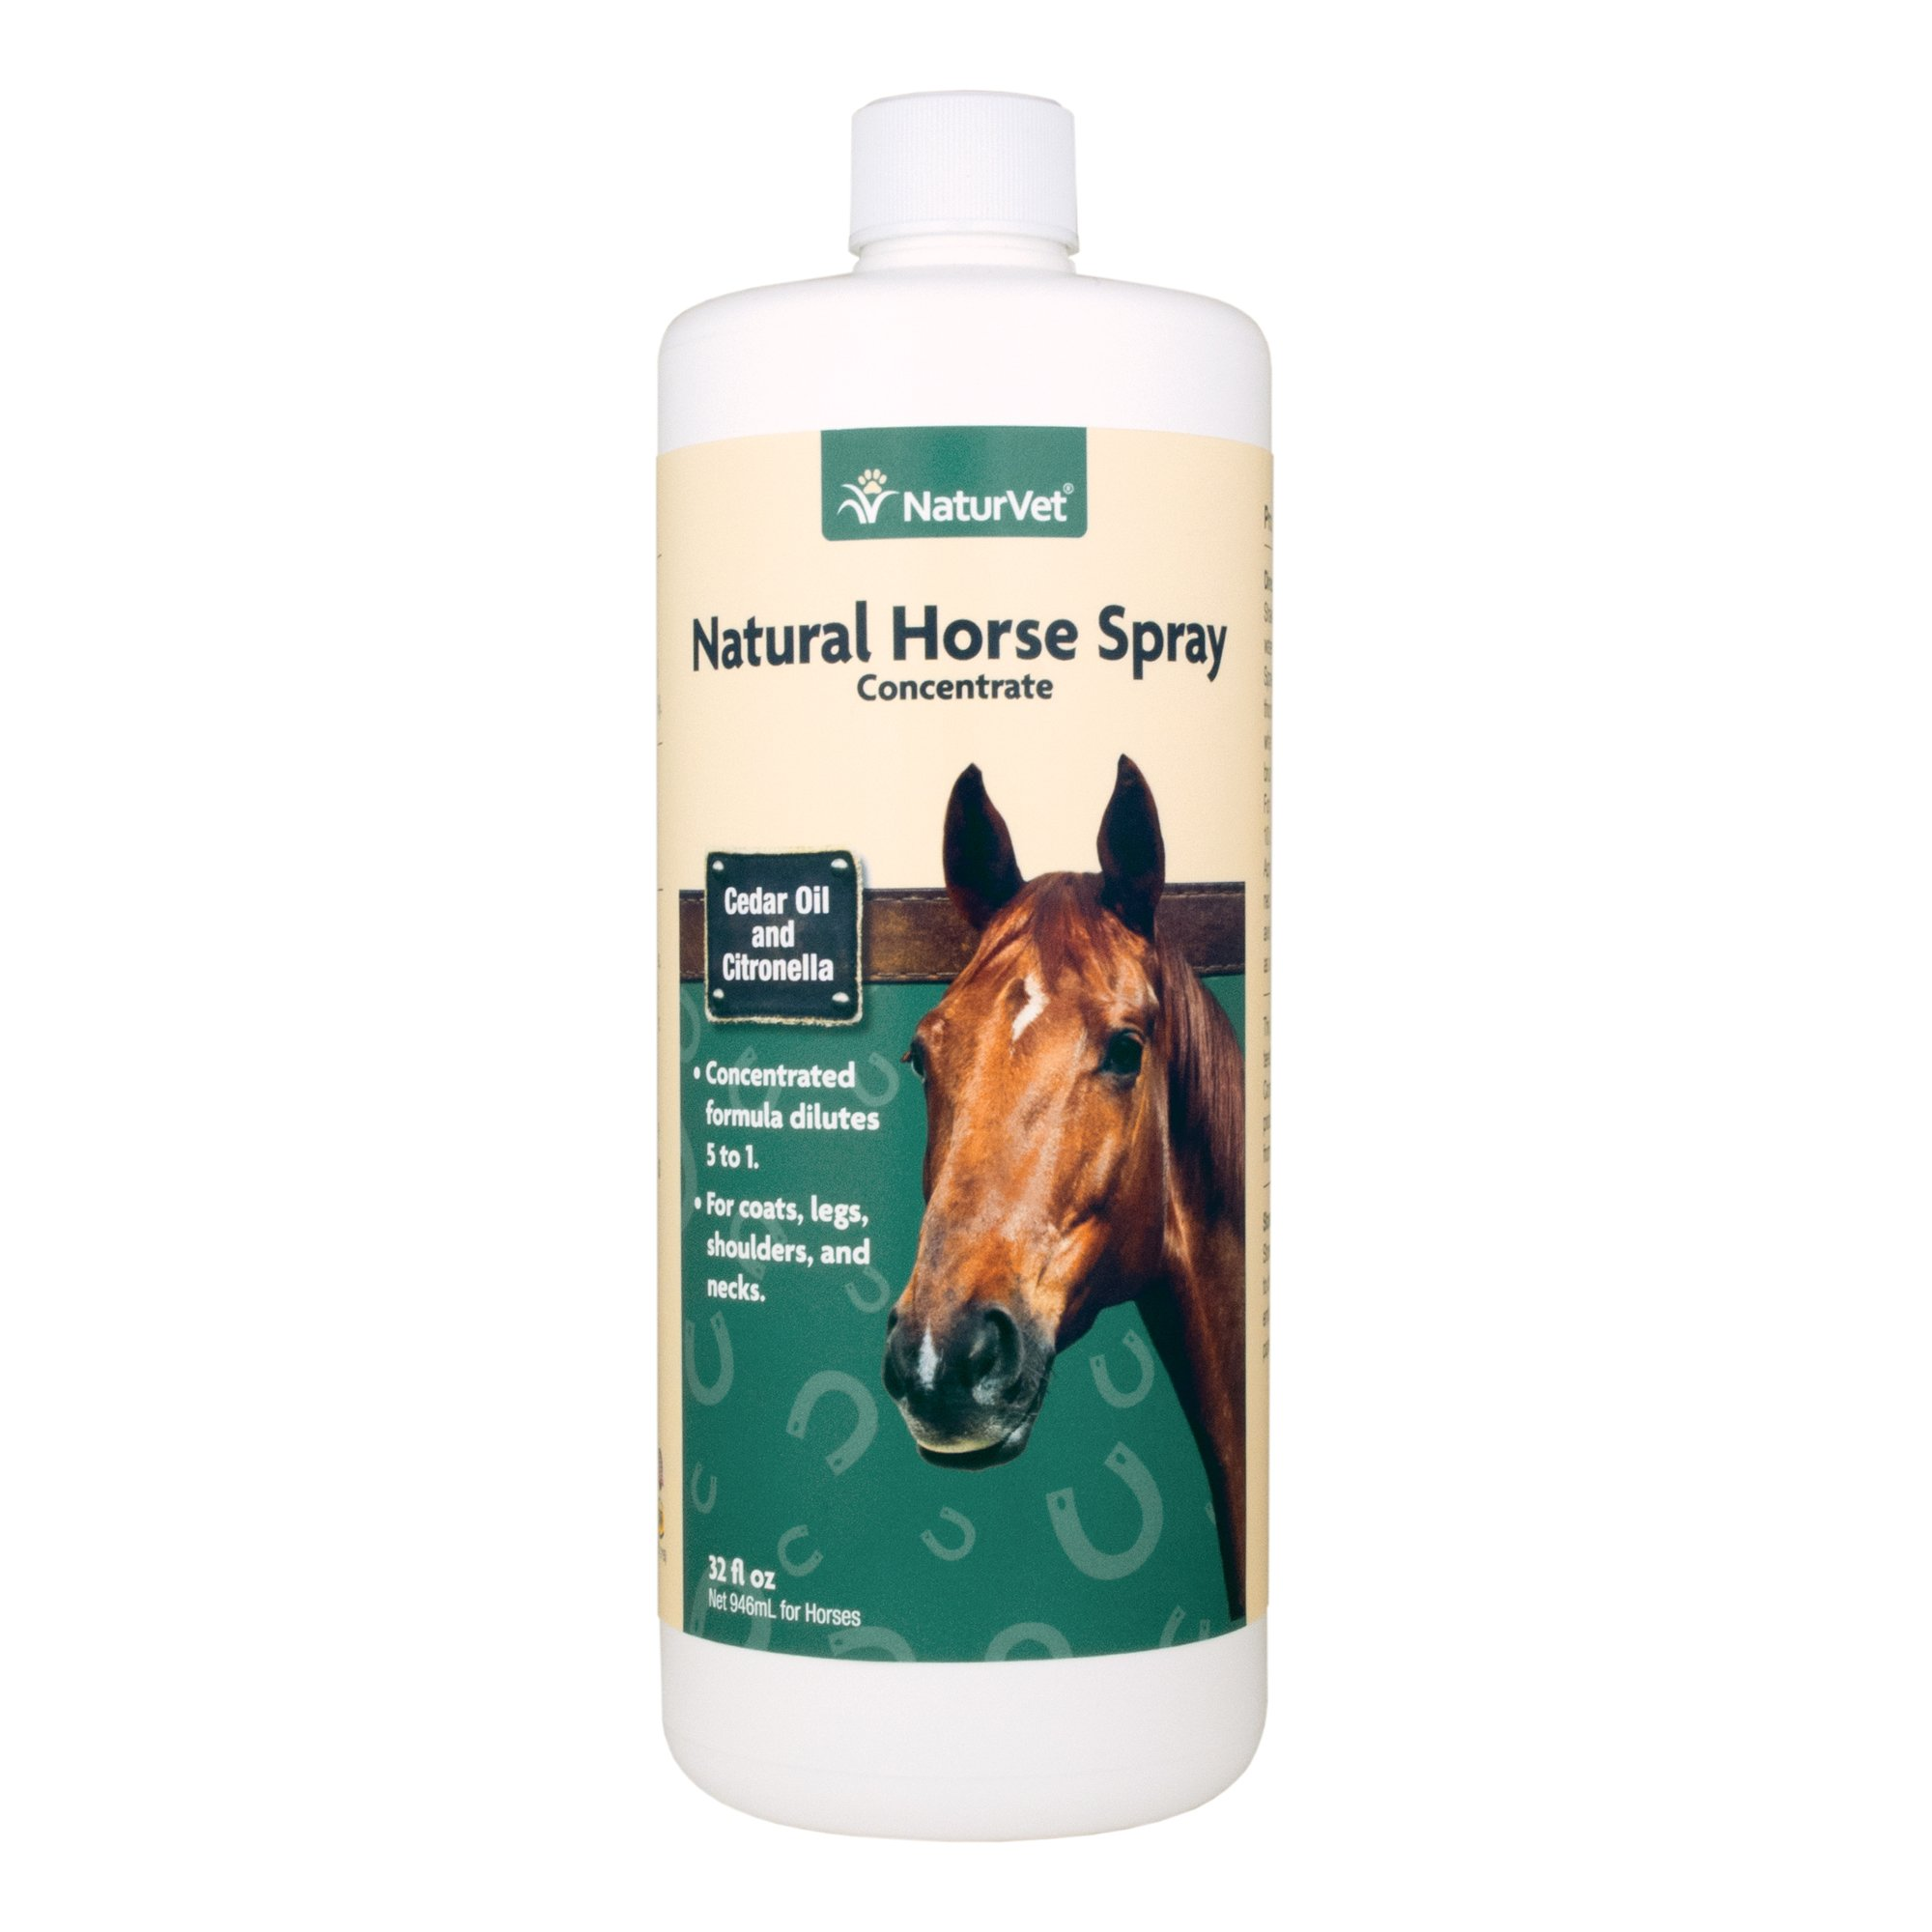 NaturVet Natural Horse Spray with Cedar Oil and Citronella Concentrate for Horses, 32 oz Liquid, Made in the USA